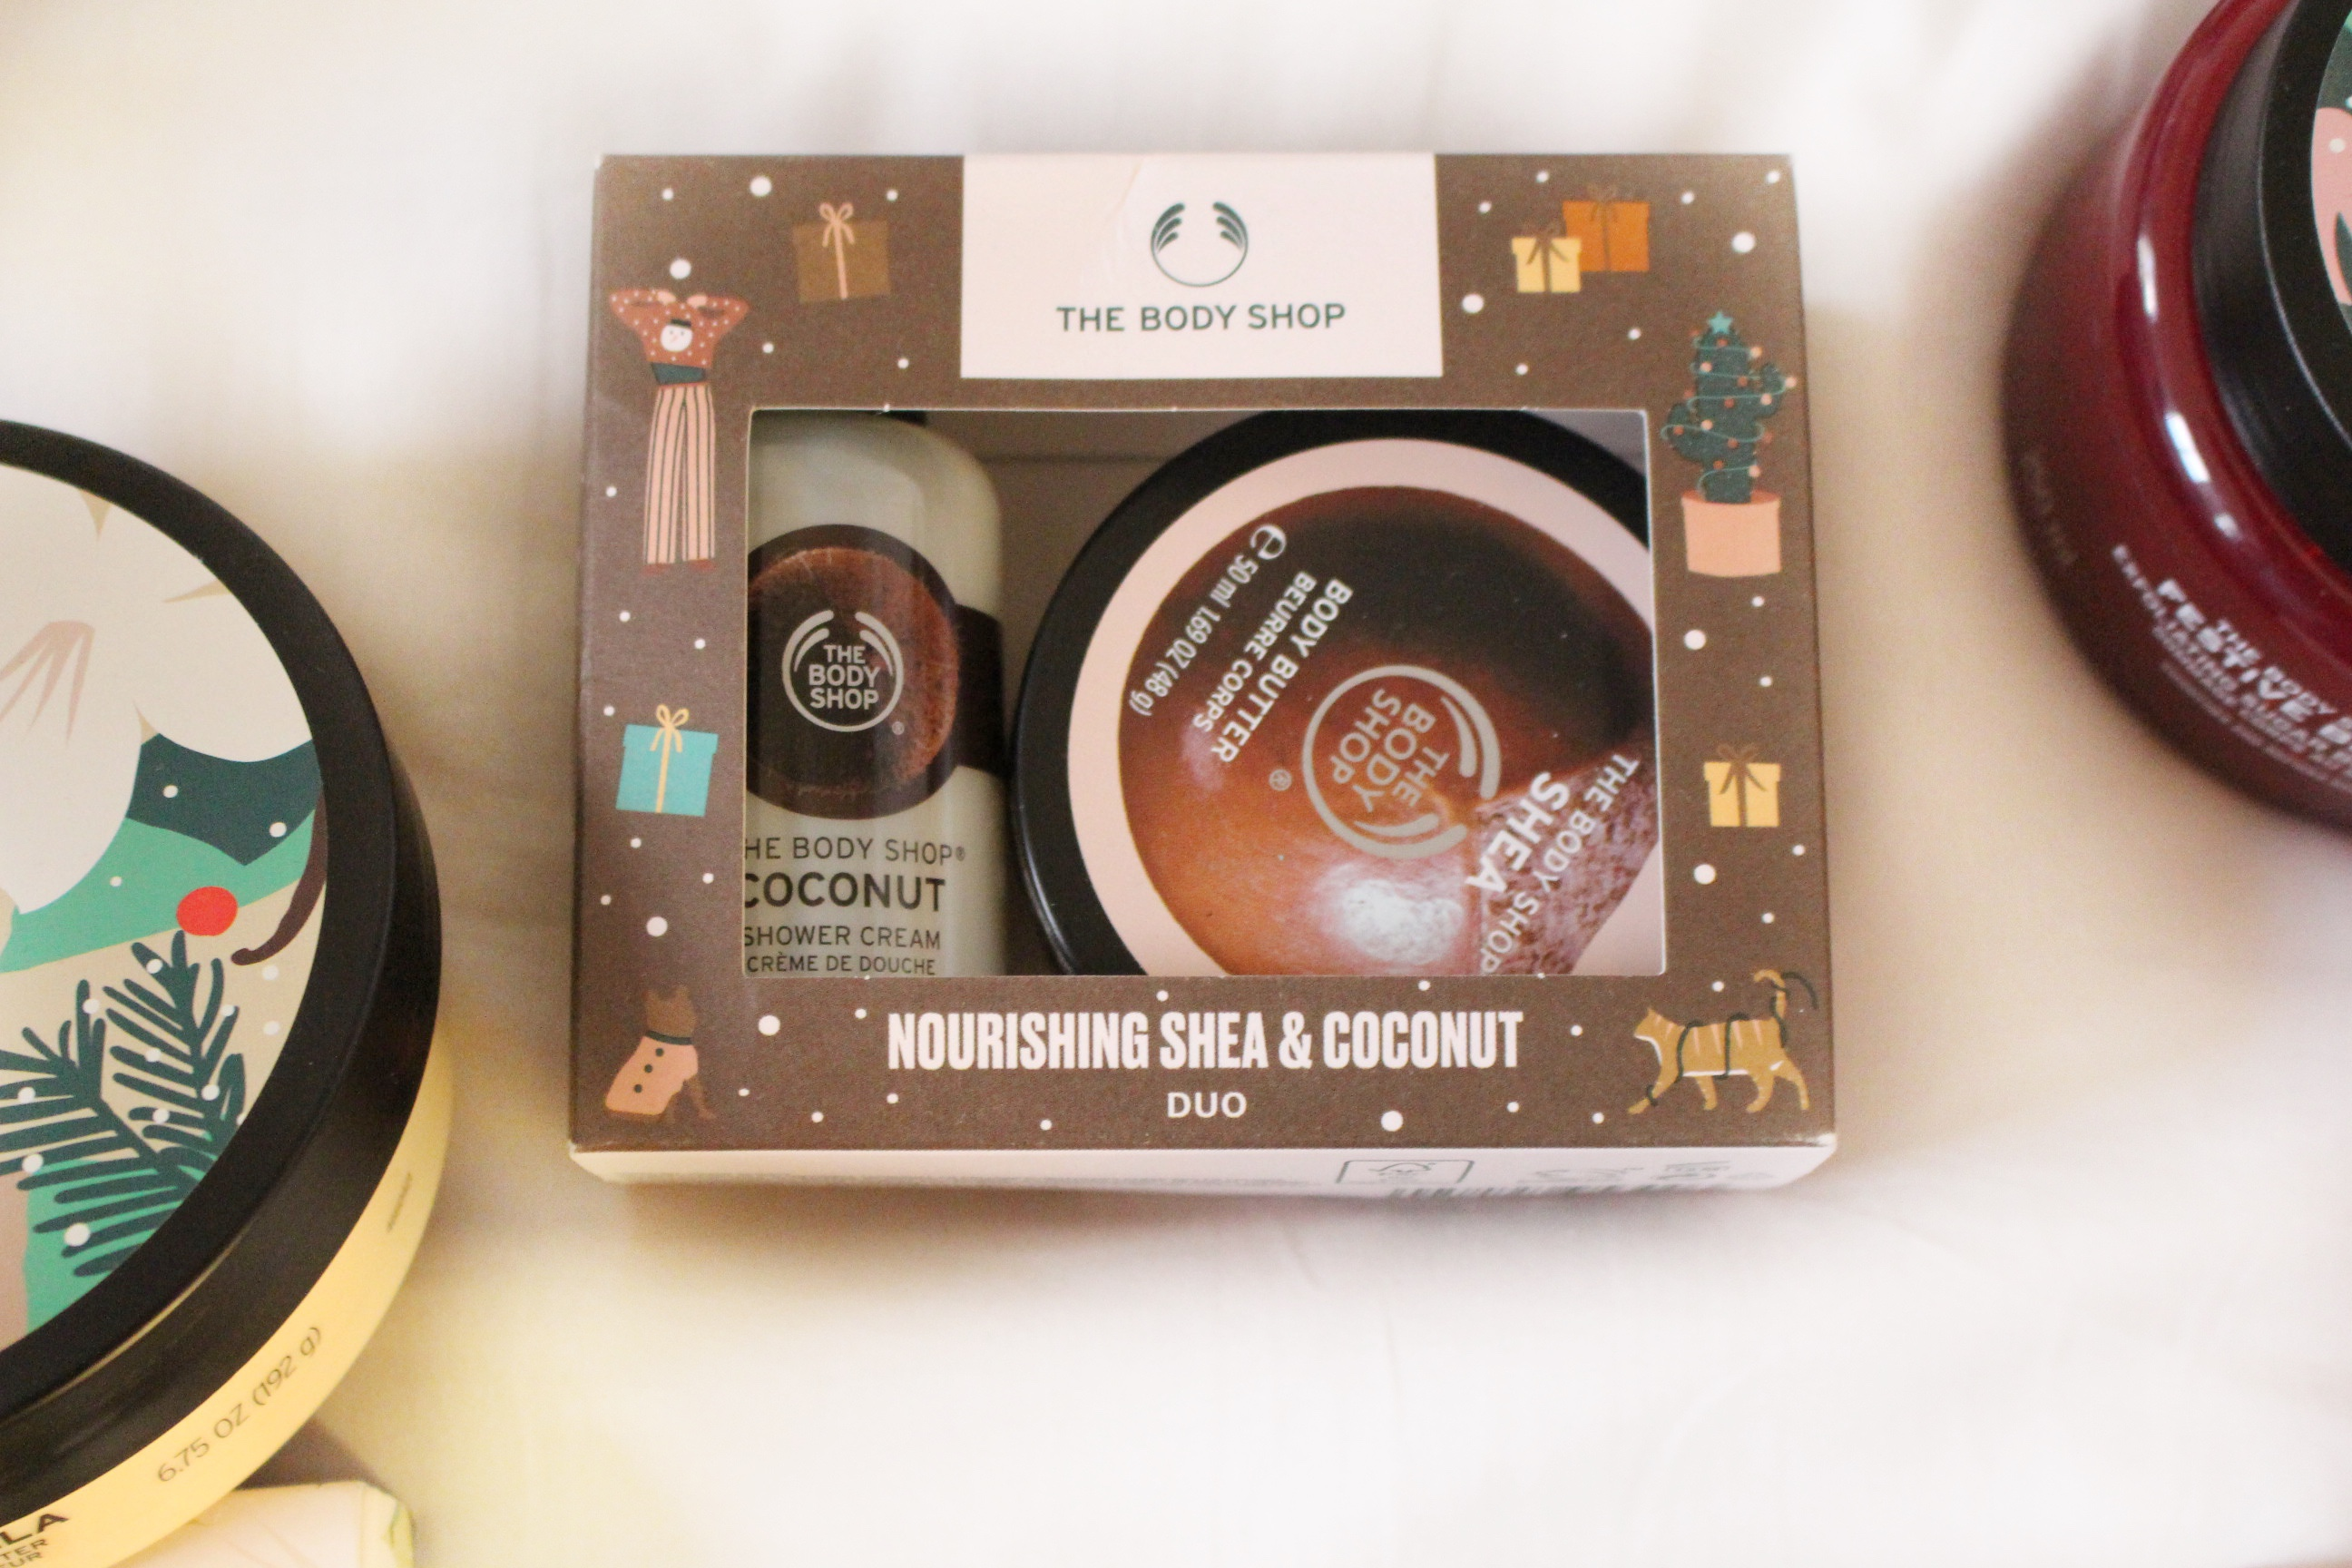 mini-duo-coconut-shea-butter-the-bodyshop-hair-grips-christmas-gift-guide-raychel-says